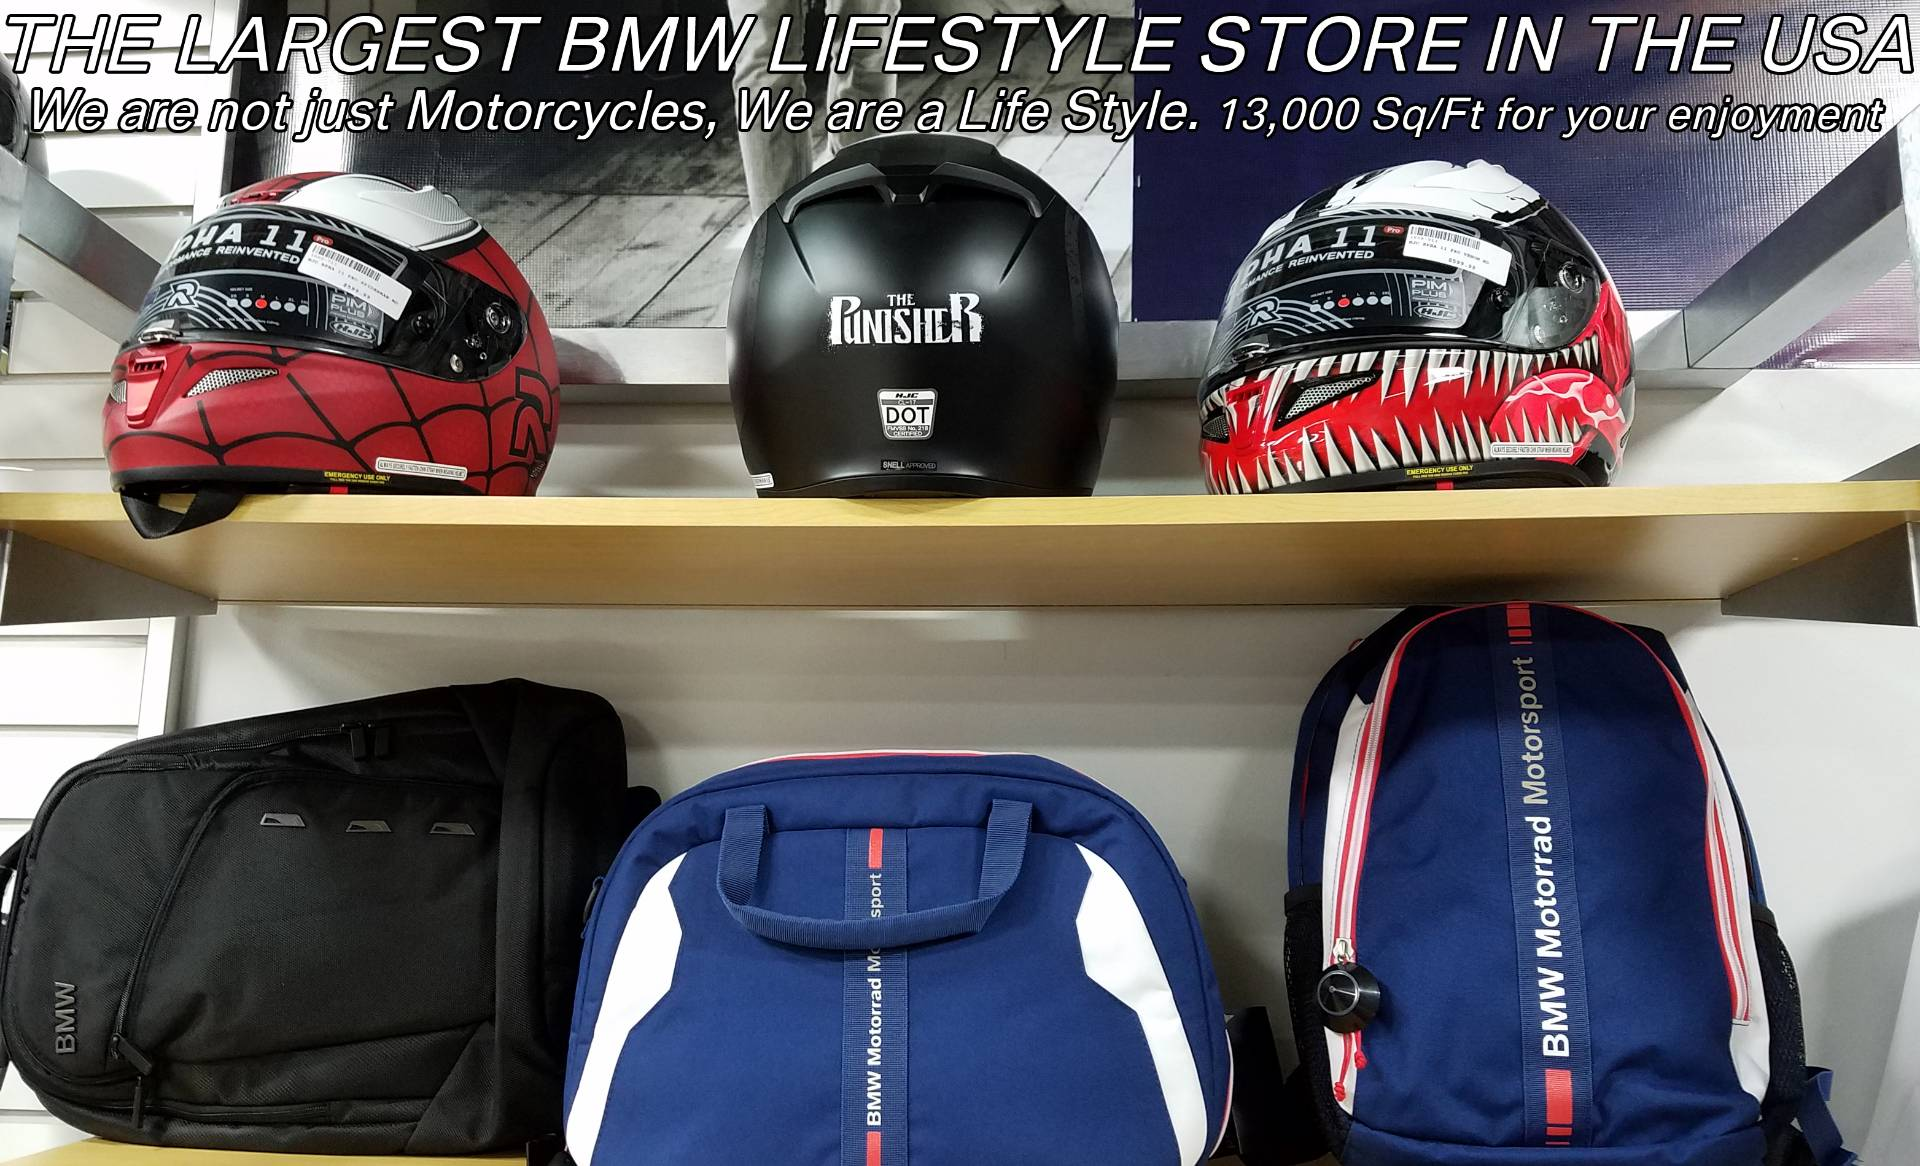 BMW Motorcycles of Miami, Motorcycles of Miami, Motorcycles Miami, New Motorcycles, Used Motorcycles, pre-owned. #BMWMotorcyclesOfMiami #MotorcyclesOfMiami. - Photo 28